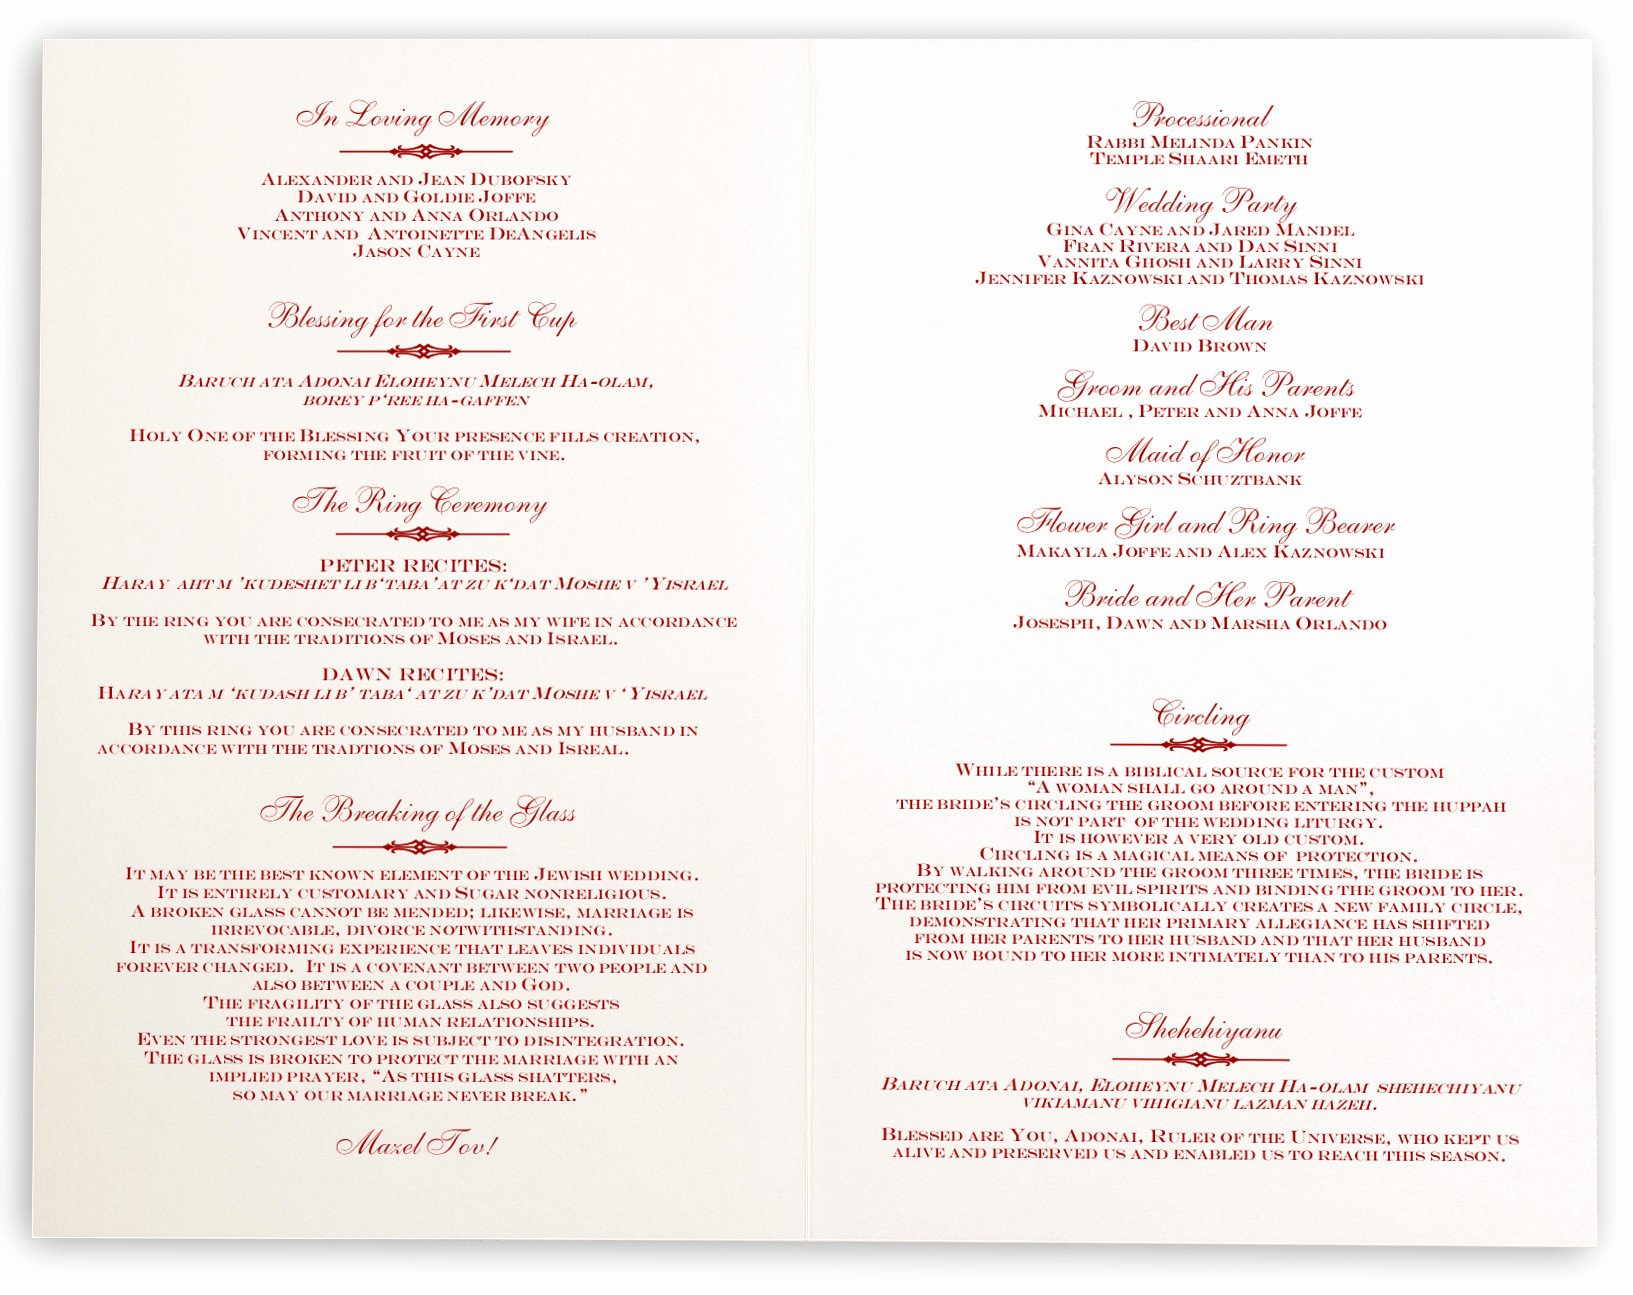 Jewish Wedding Program Template Best Of Elegance and Engravers Jewish Wedding Ceremony Program